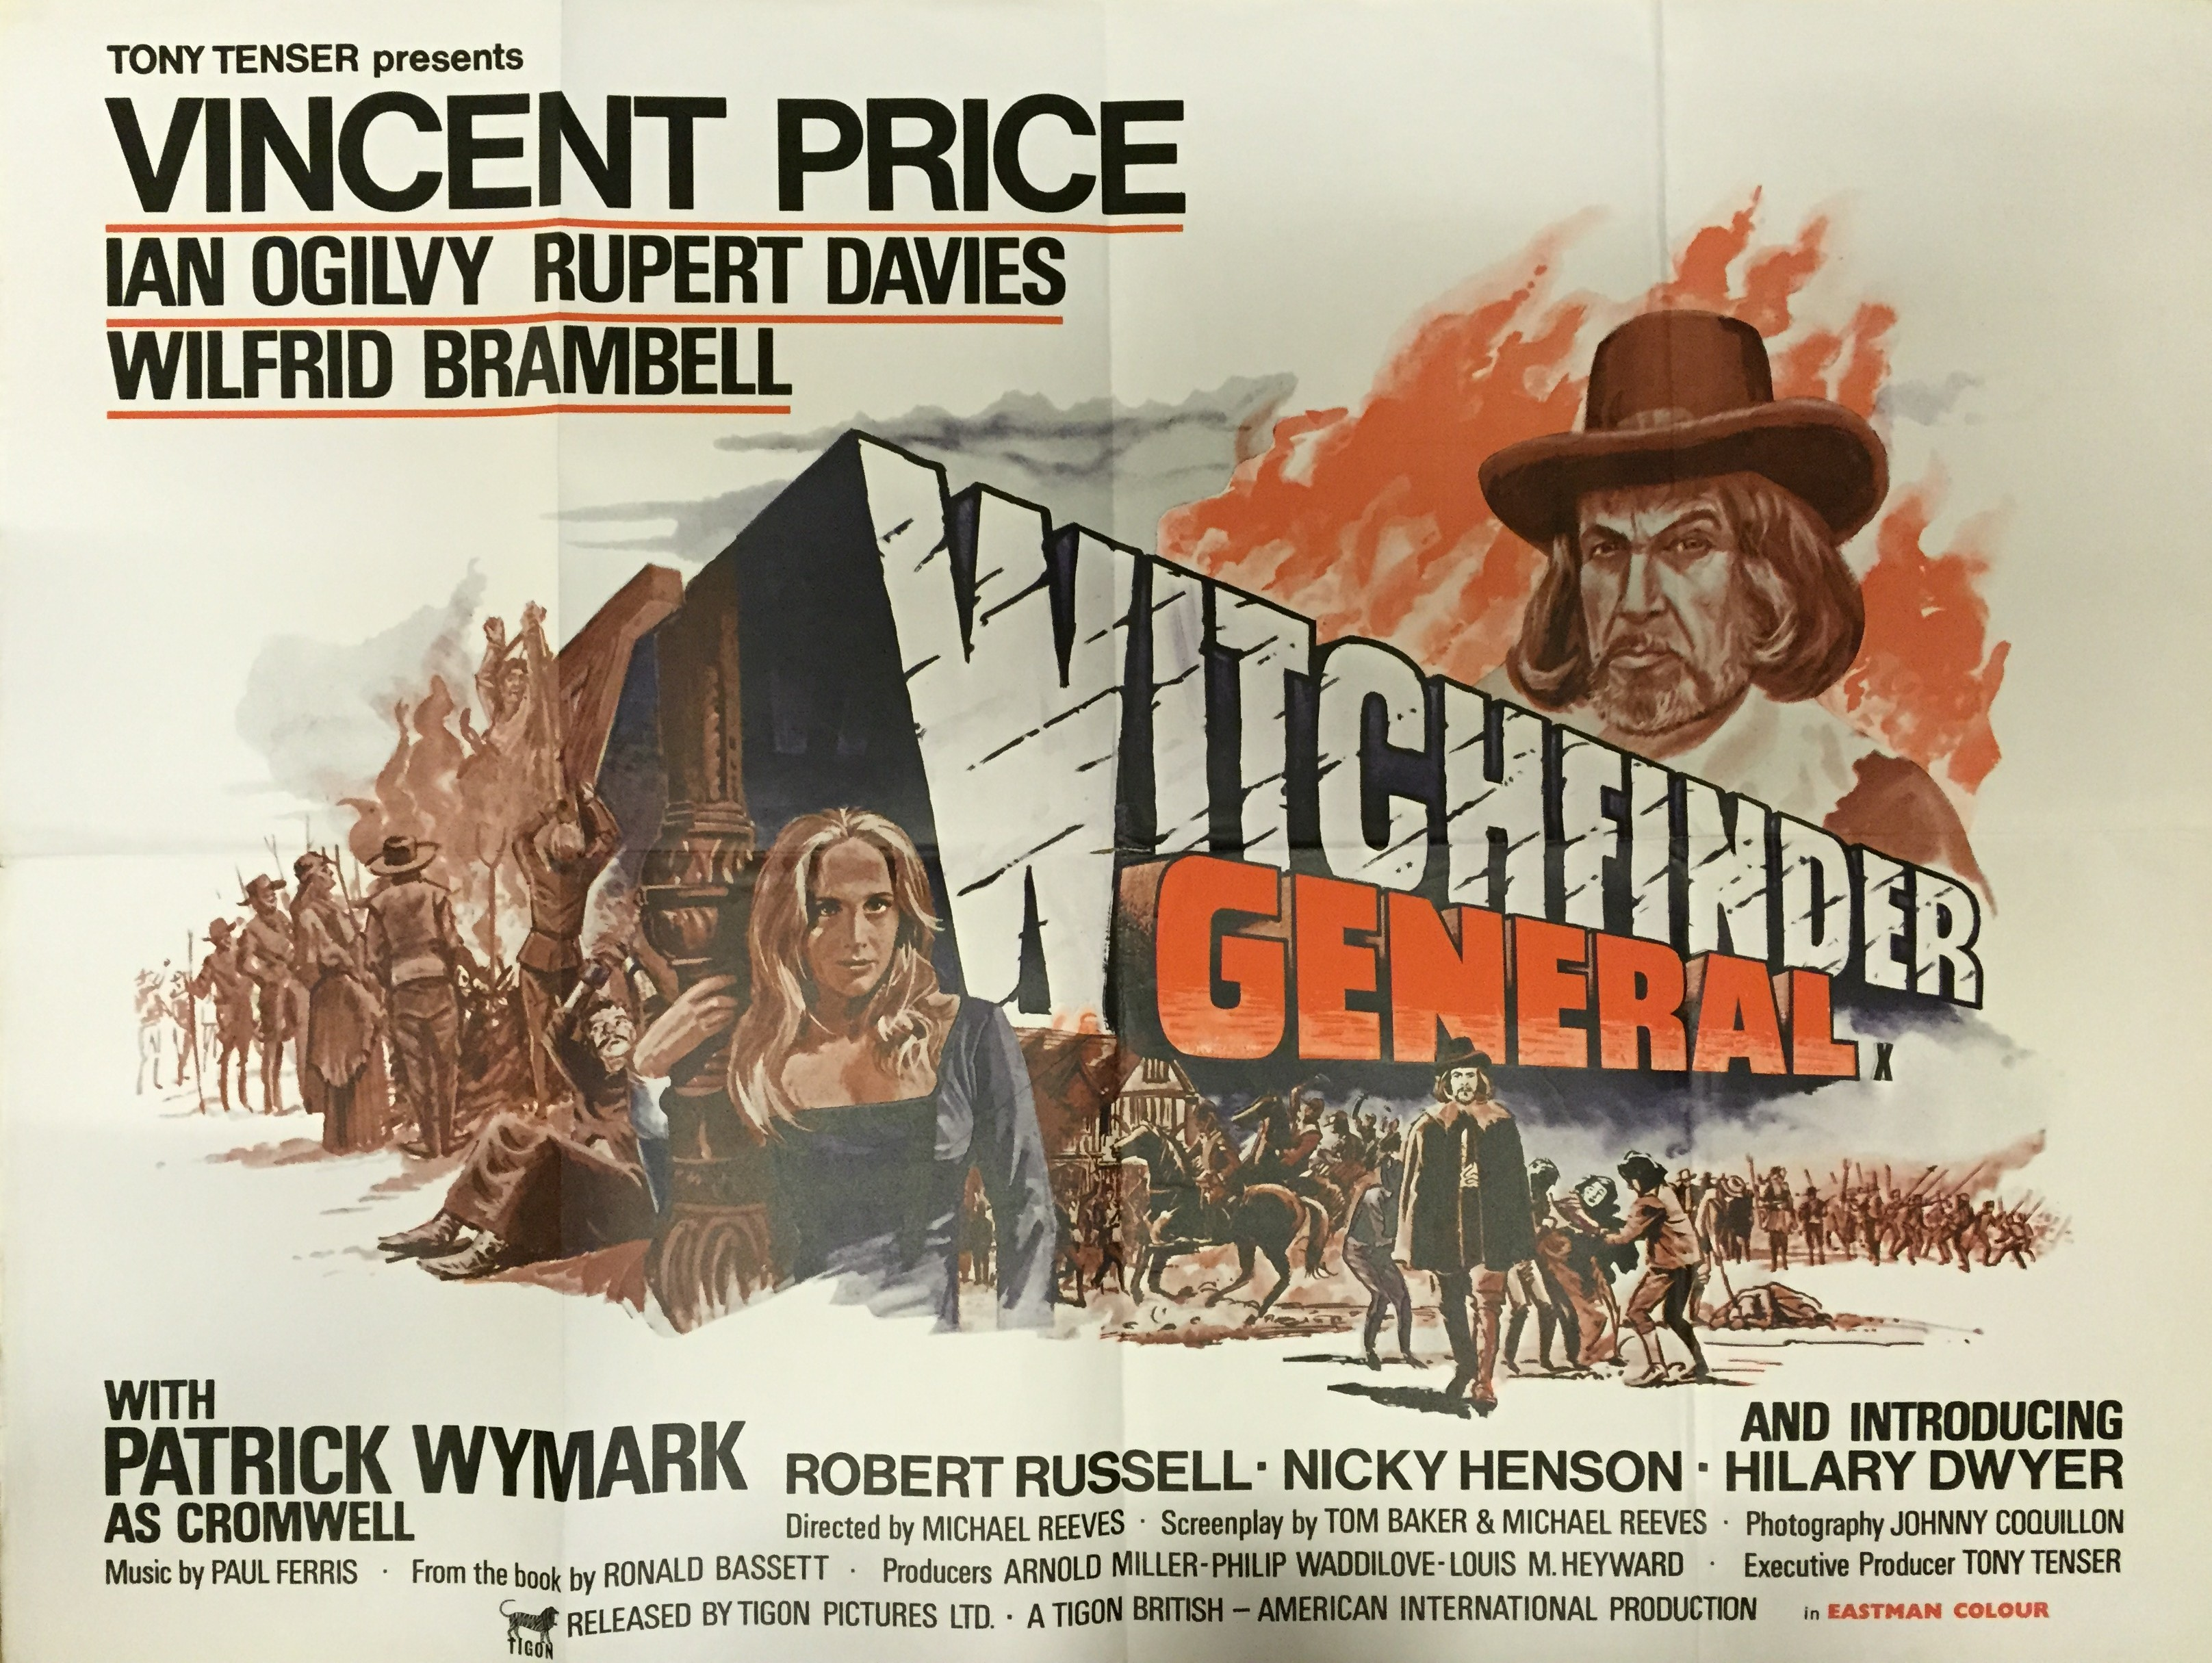 Michael may witchfinder general 1968 whos in it vincent price abbott and costello meet frankenstein the gene kelly three musketeers ian ogilvy return of the saint tv show fandeluxe Choice Image